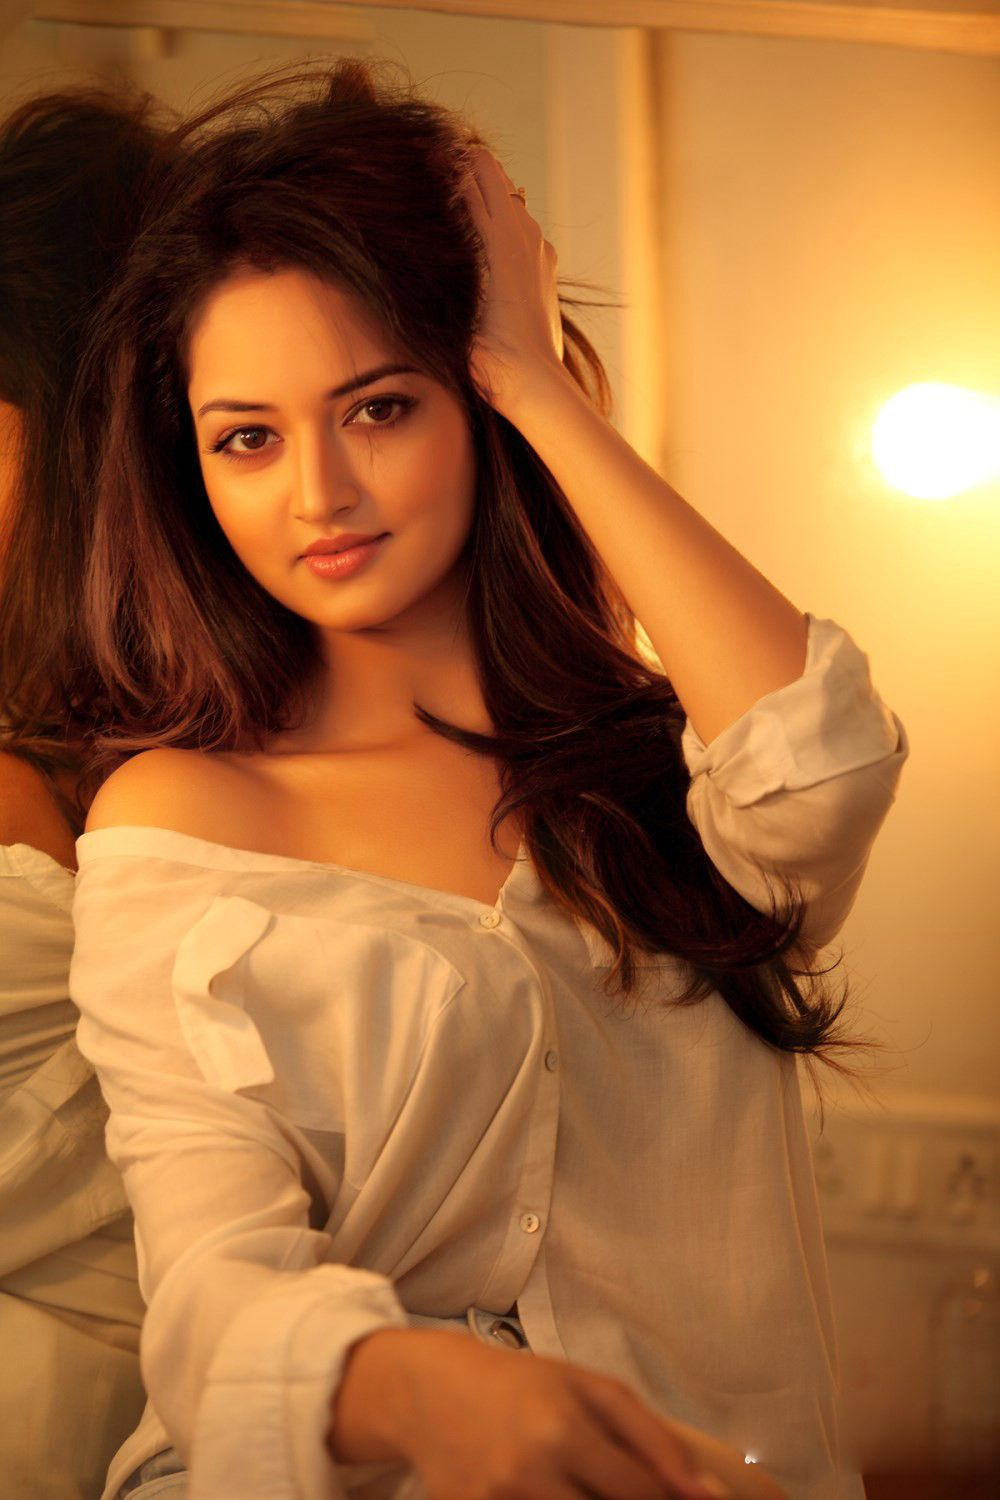 Comfort! For Hot sexy shanvi porn nude fake photos opinion you